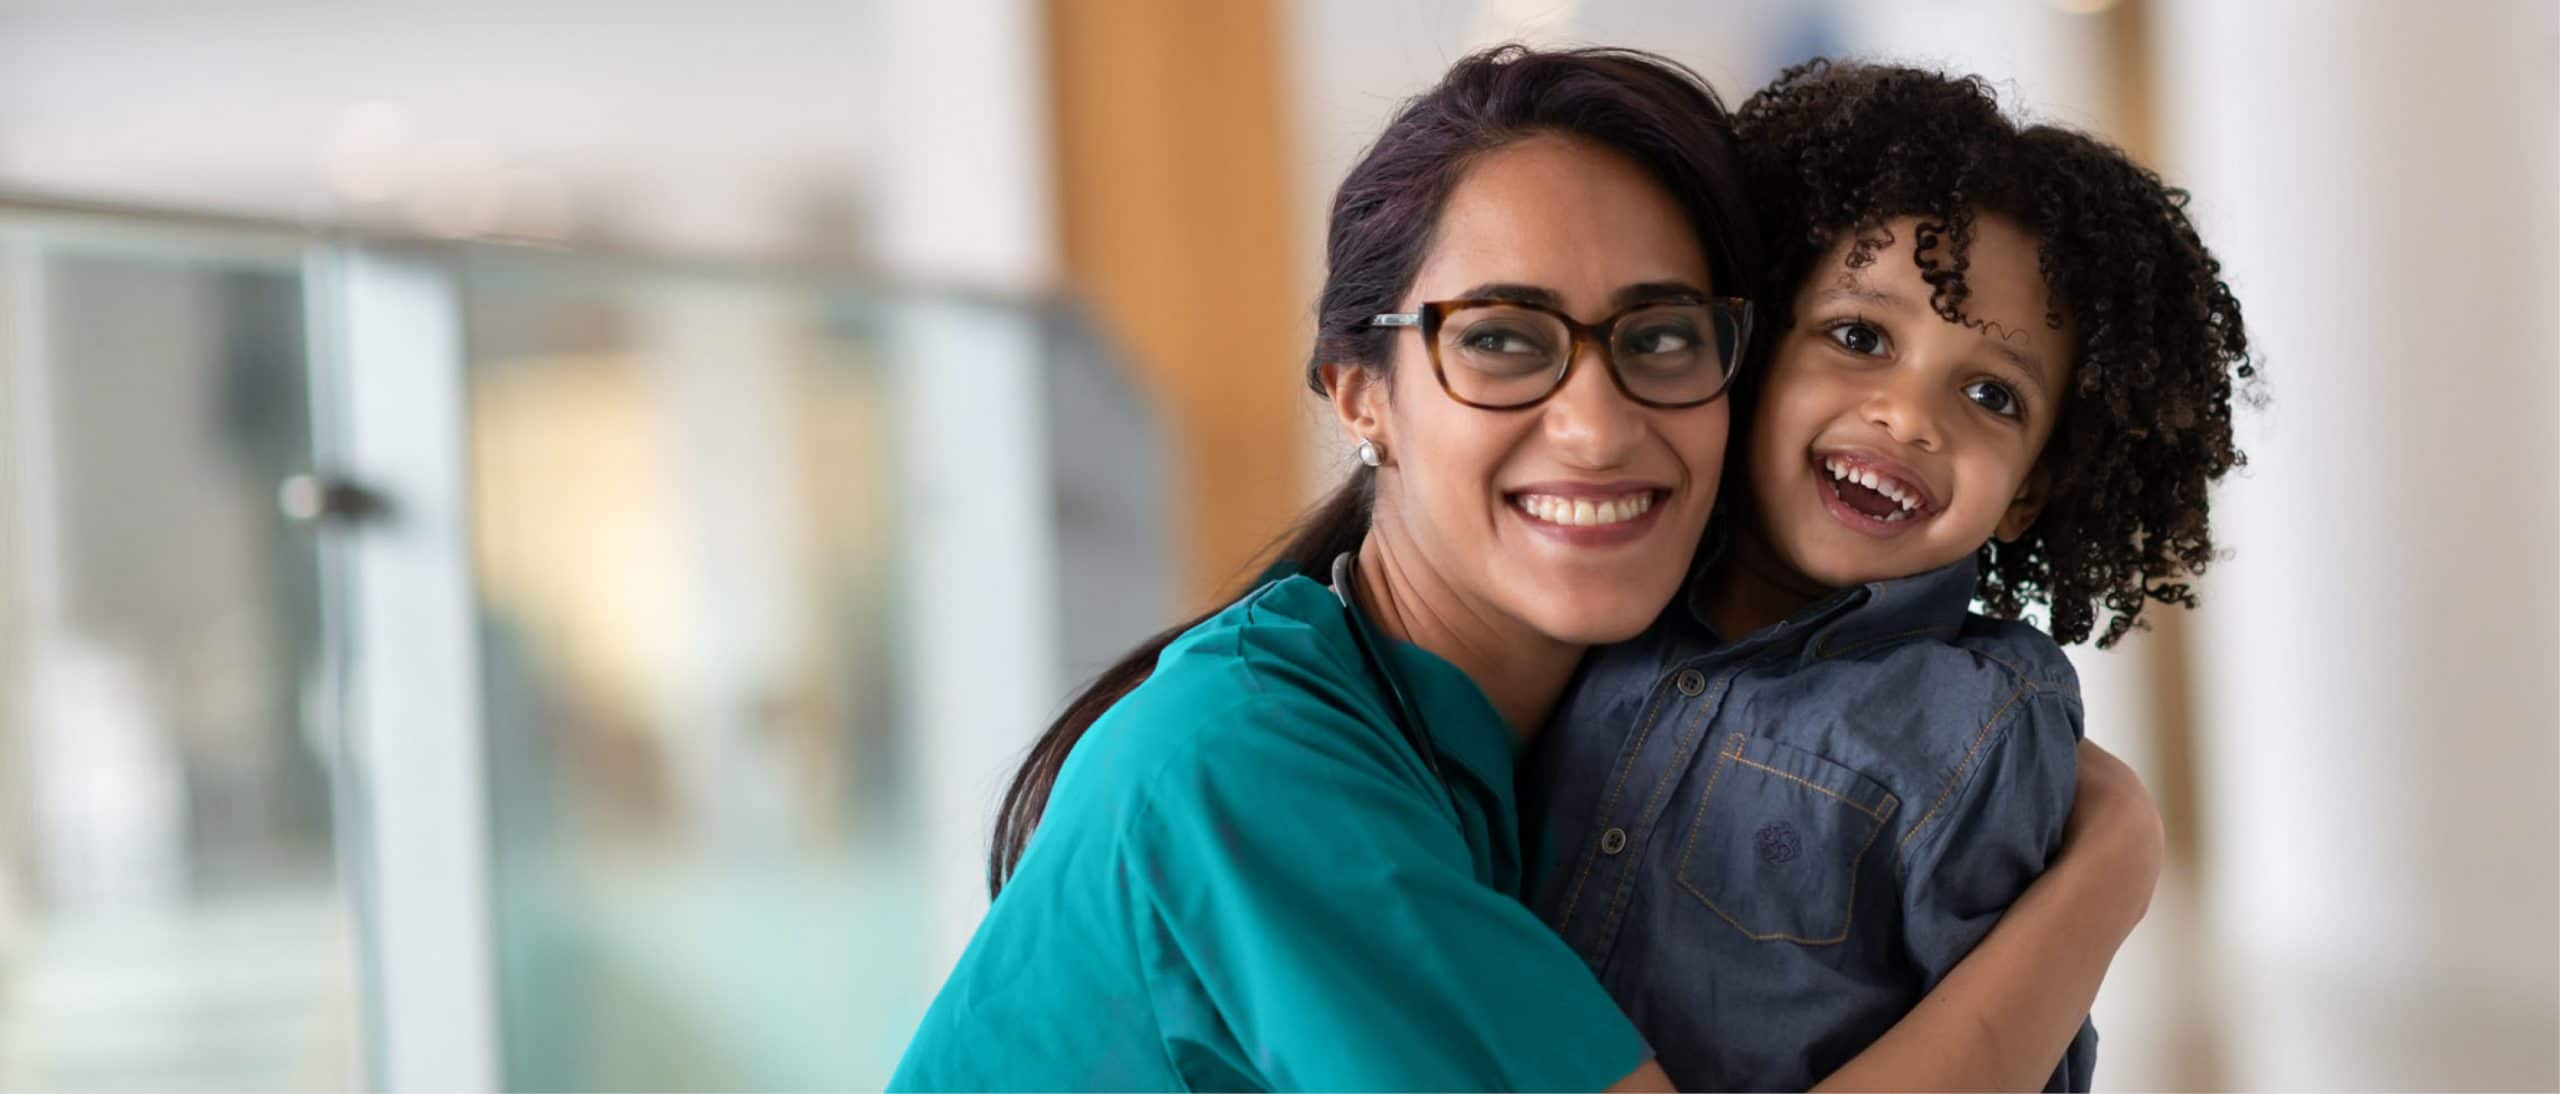 Manzil nurse hugging a child